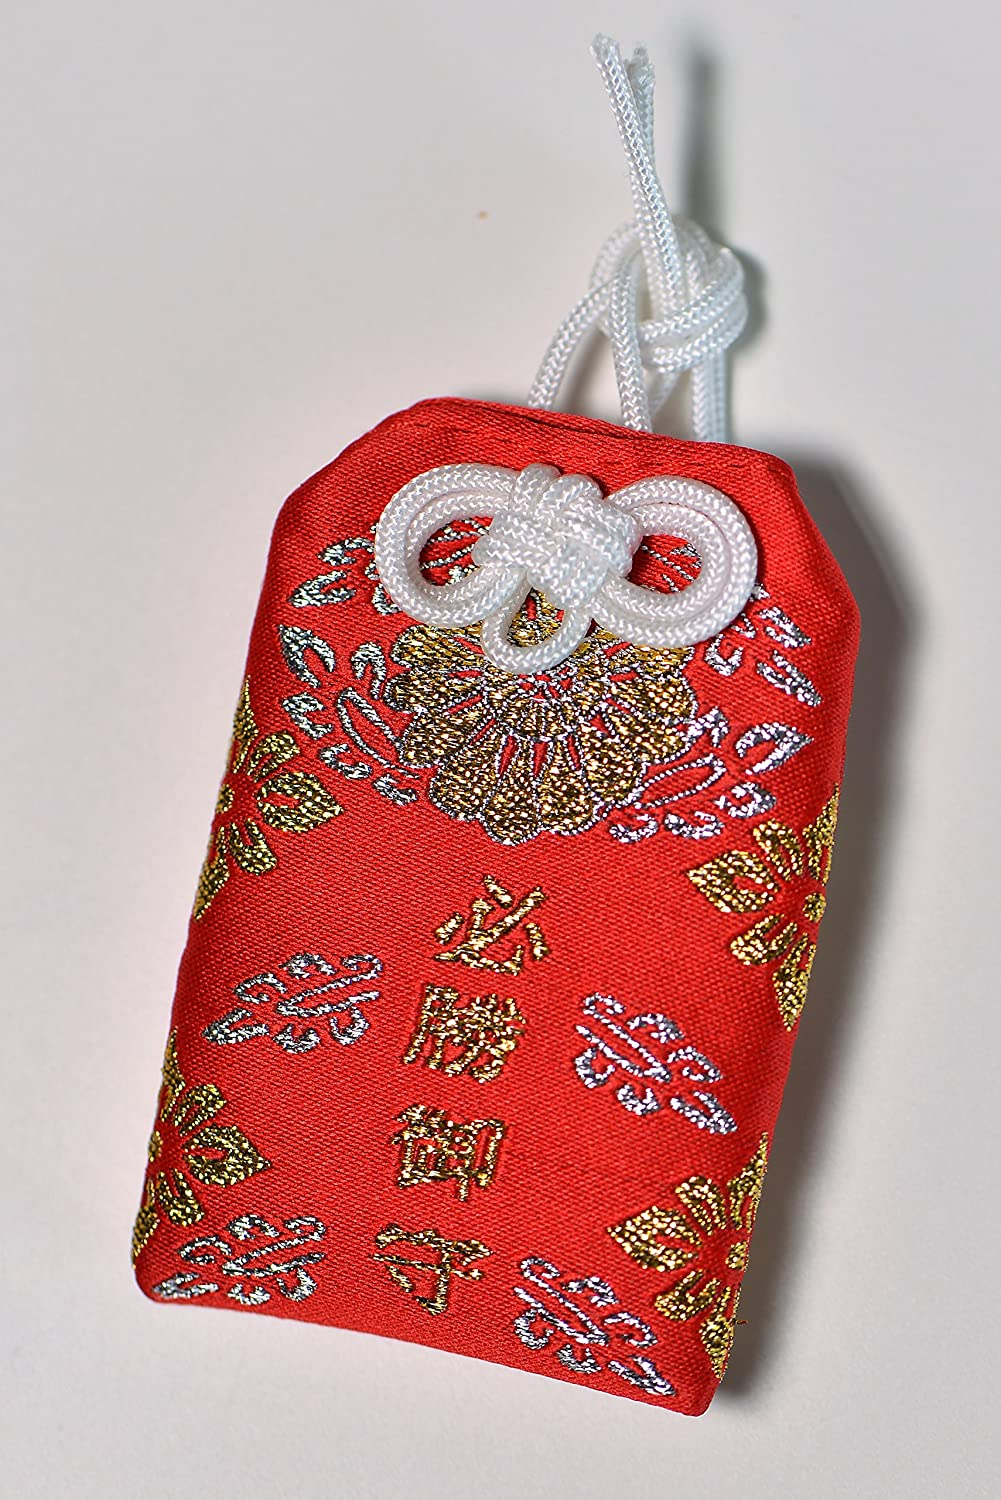 Amazon Com Japanese Omamori 10 Styles Of Good Luck Charms For Health Career Education Love Safety Wealth Academic Success Red Kitchen Dining